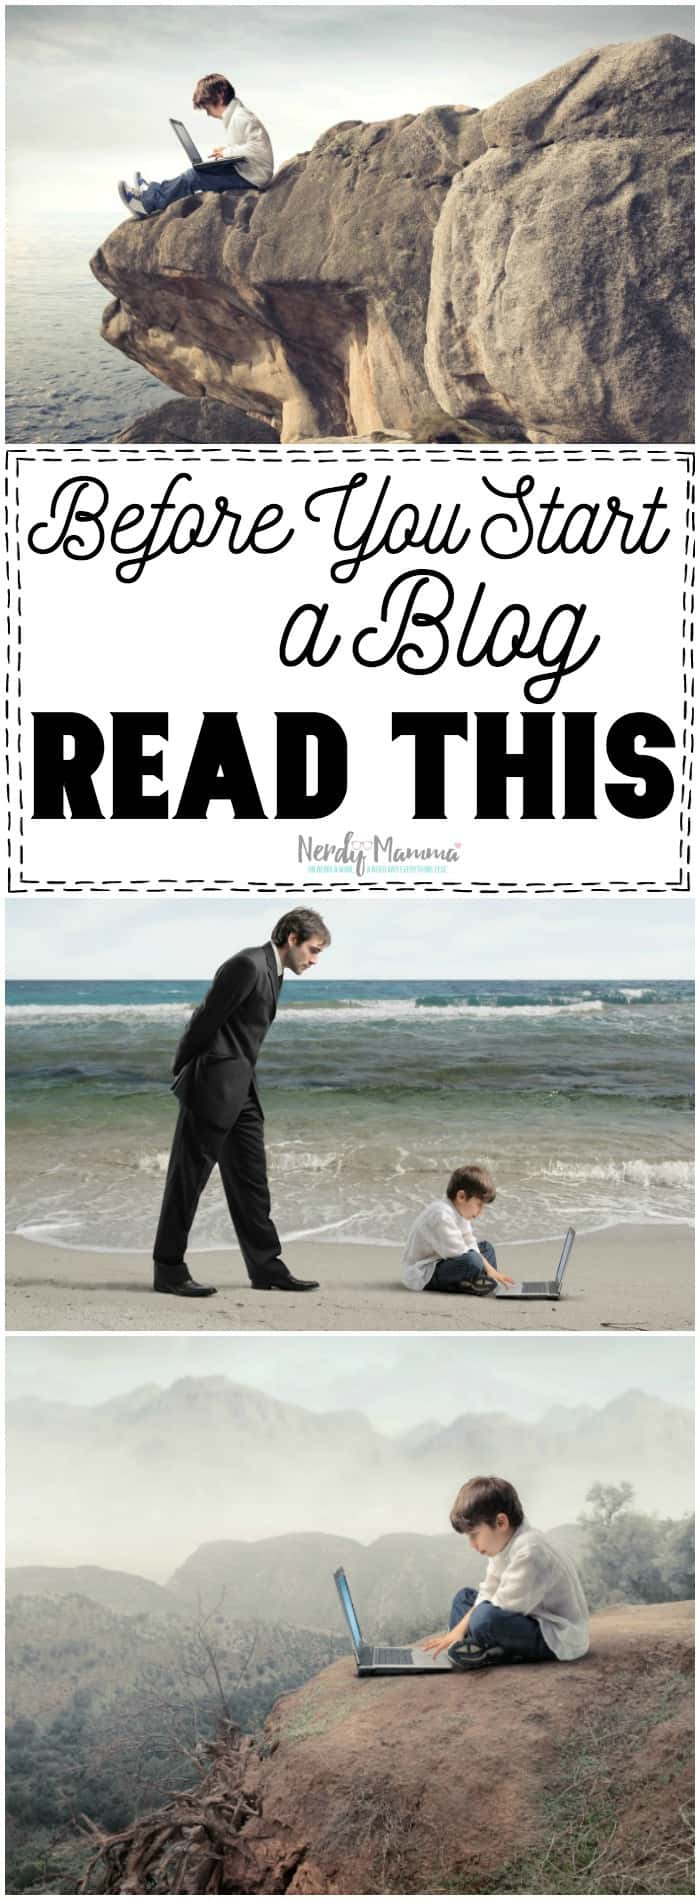 This is really awesome advice--I wish I'd known this before I started blogging.